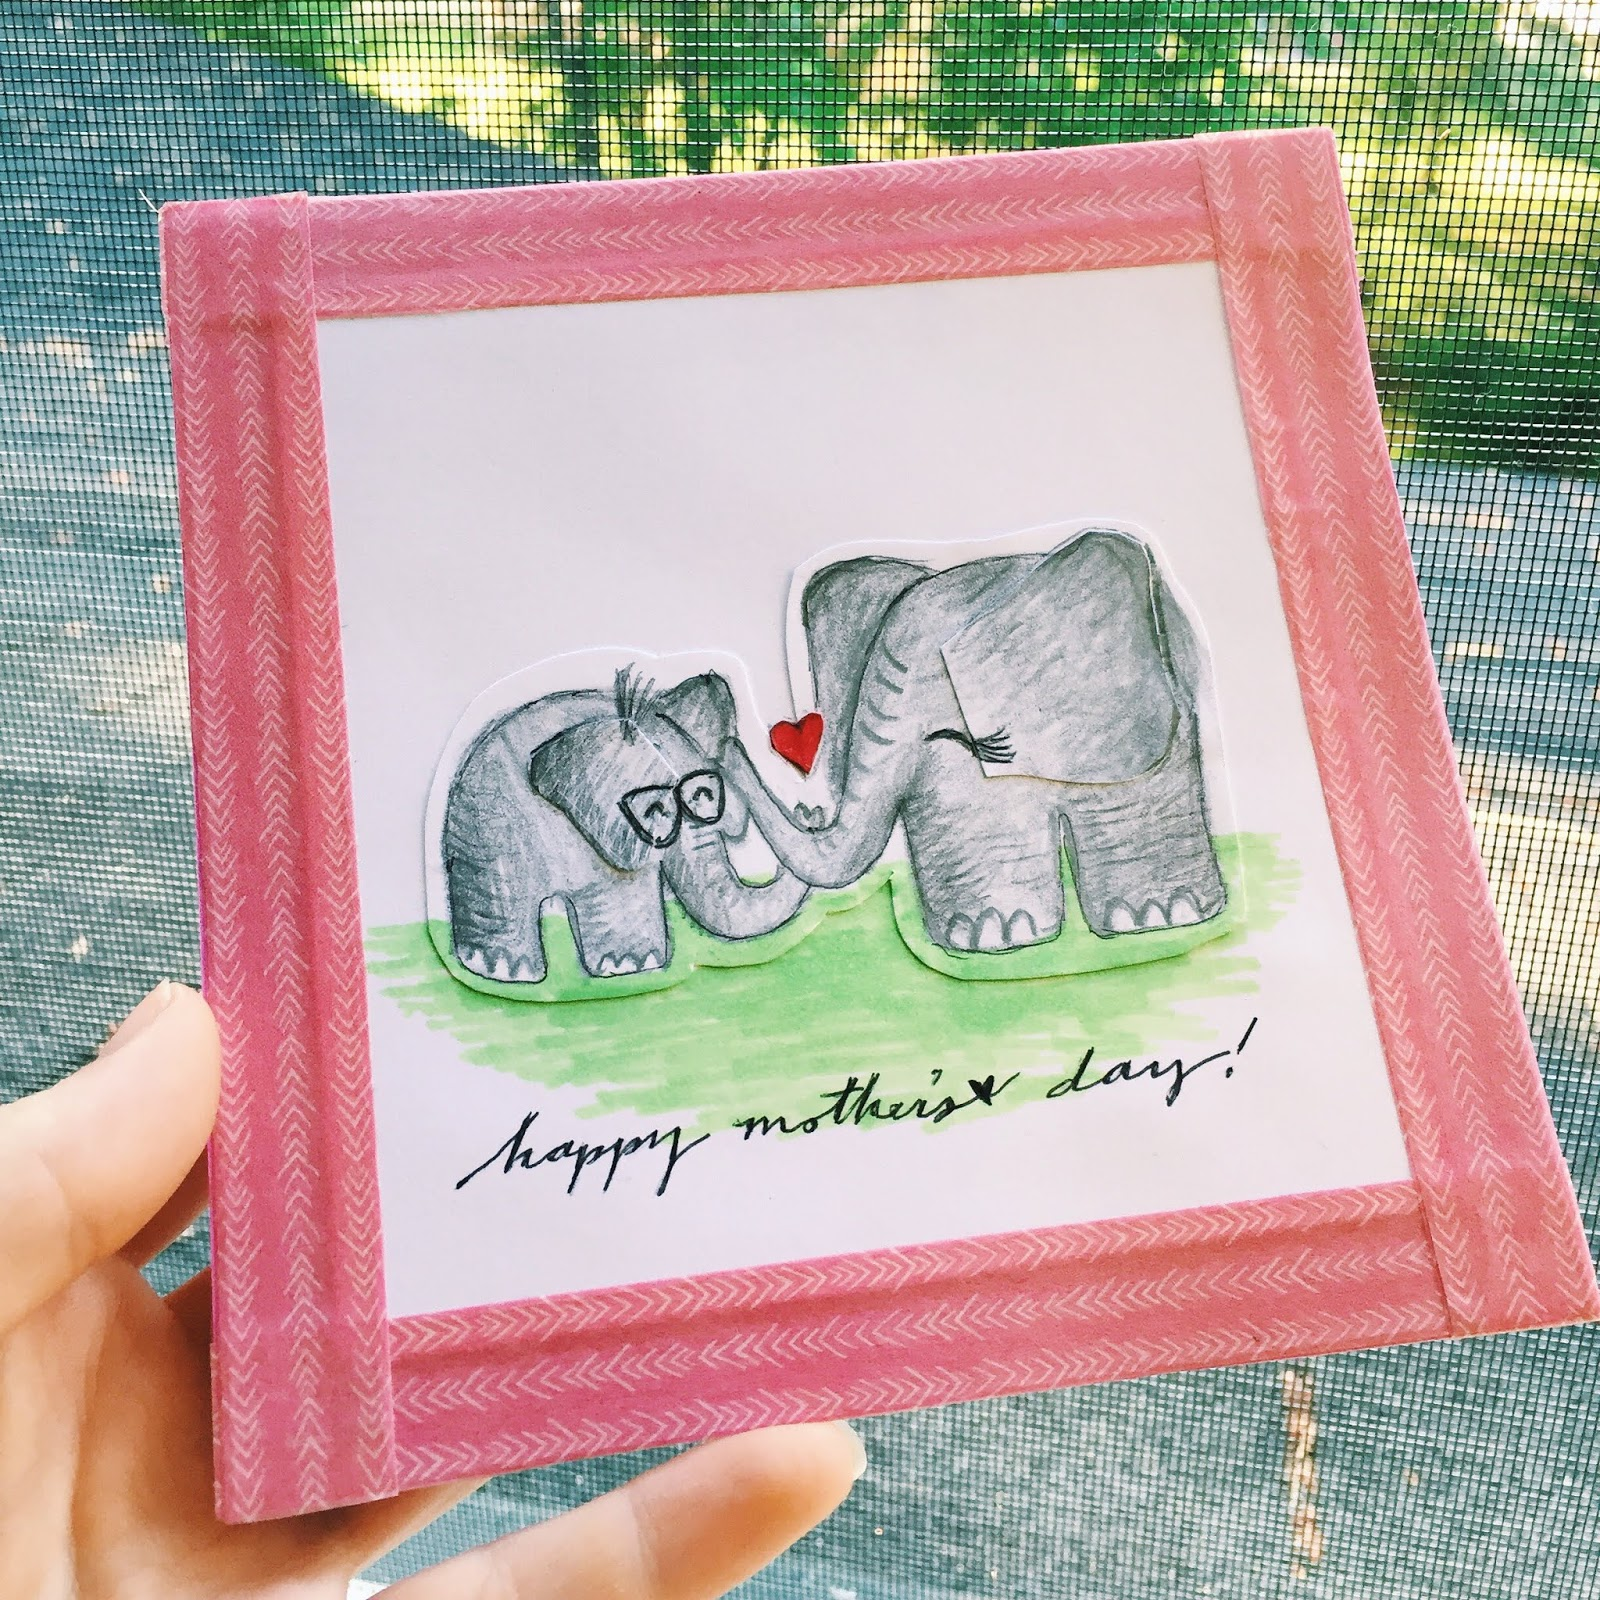 100 cards in 100 days // DAY 100: Happy Mother's Day!